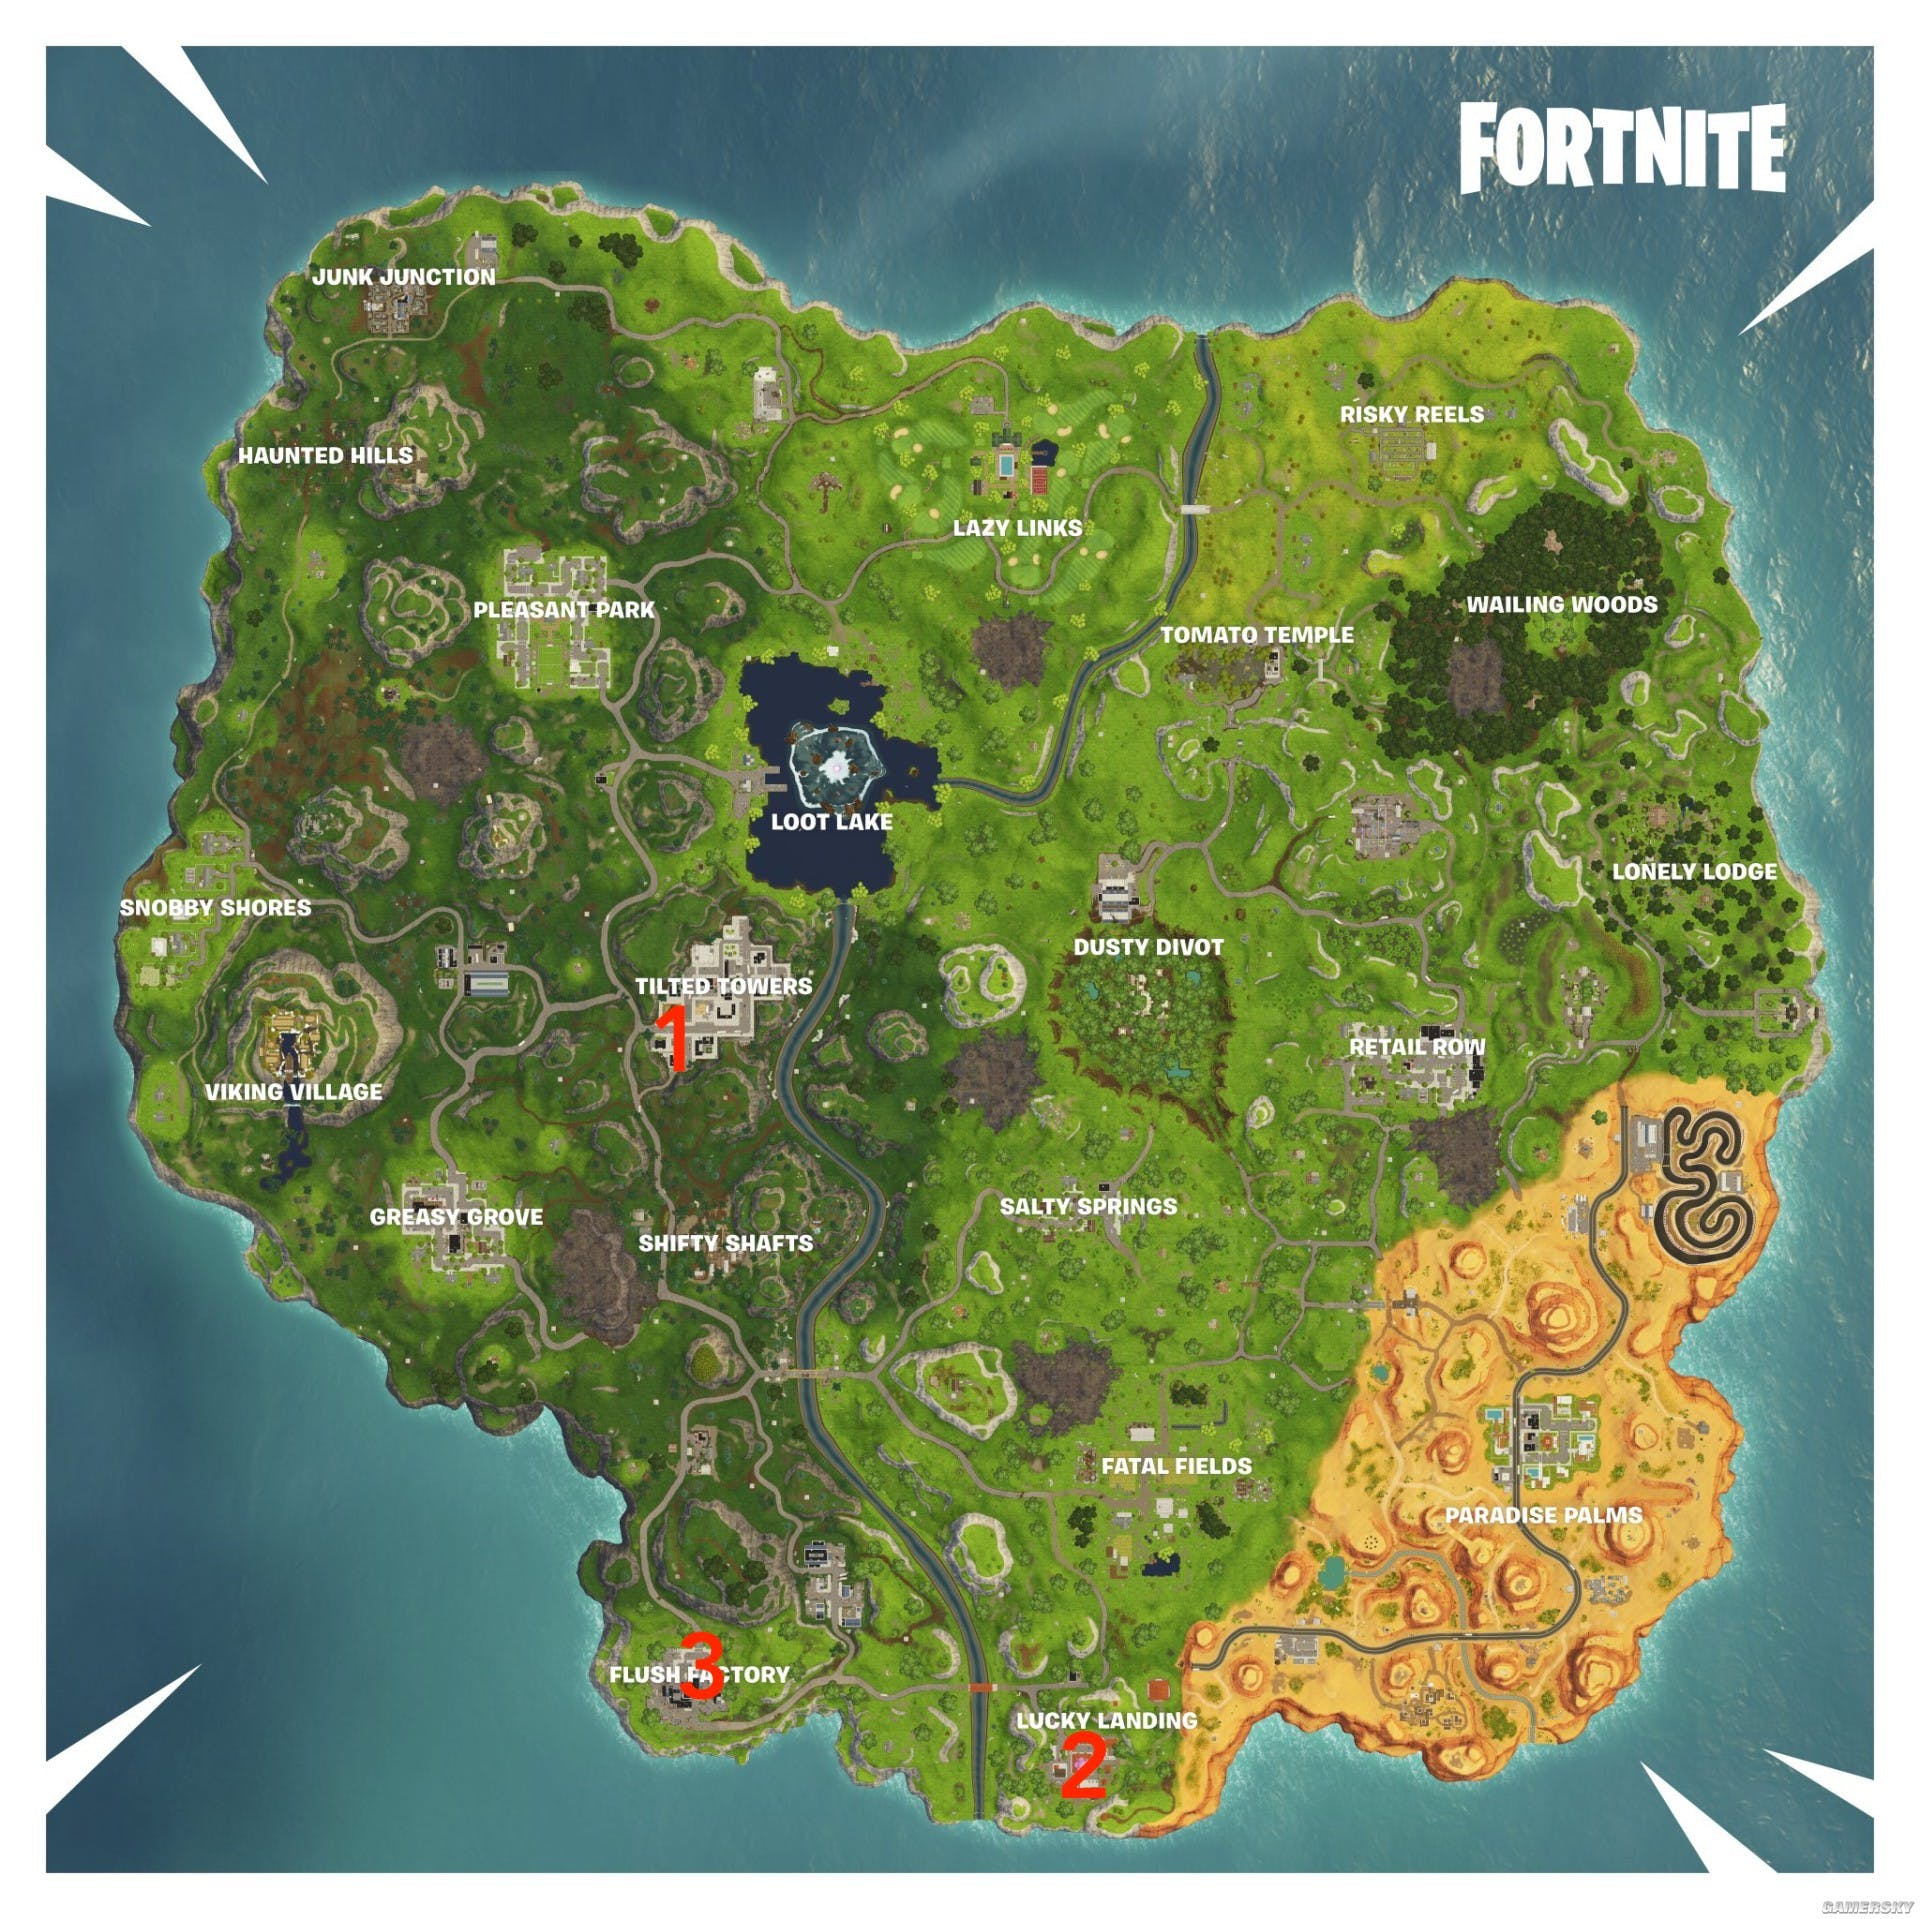 Fortnite Clock Tower Pink Tree And Porcelain Throne Locations And